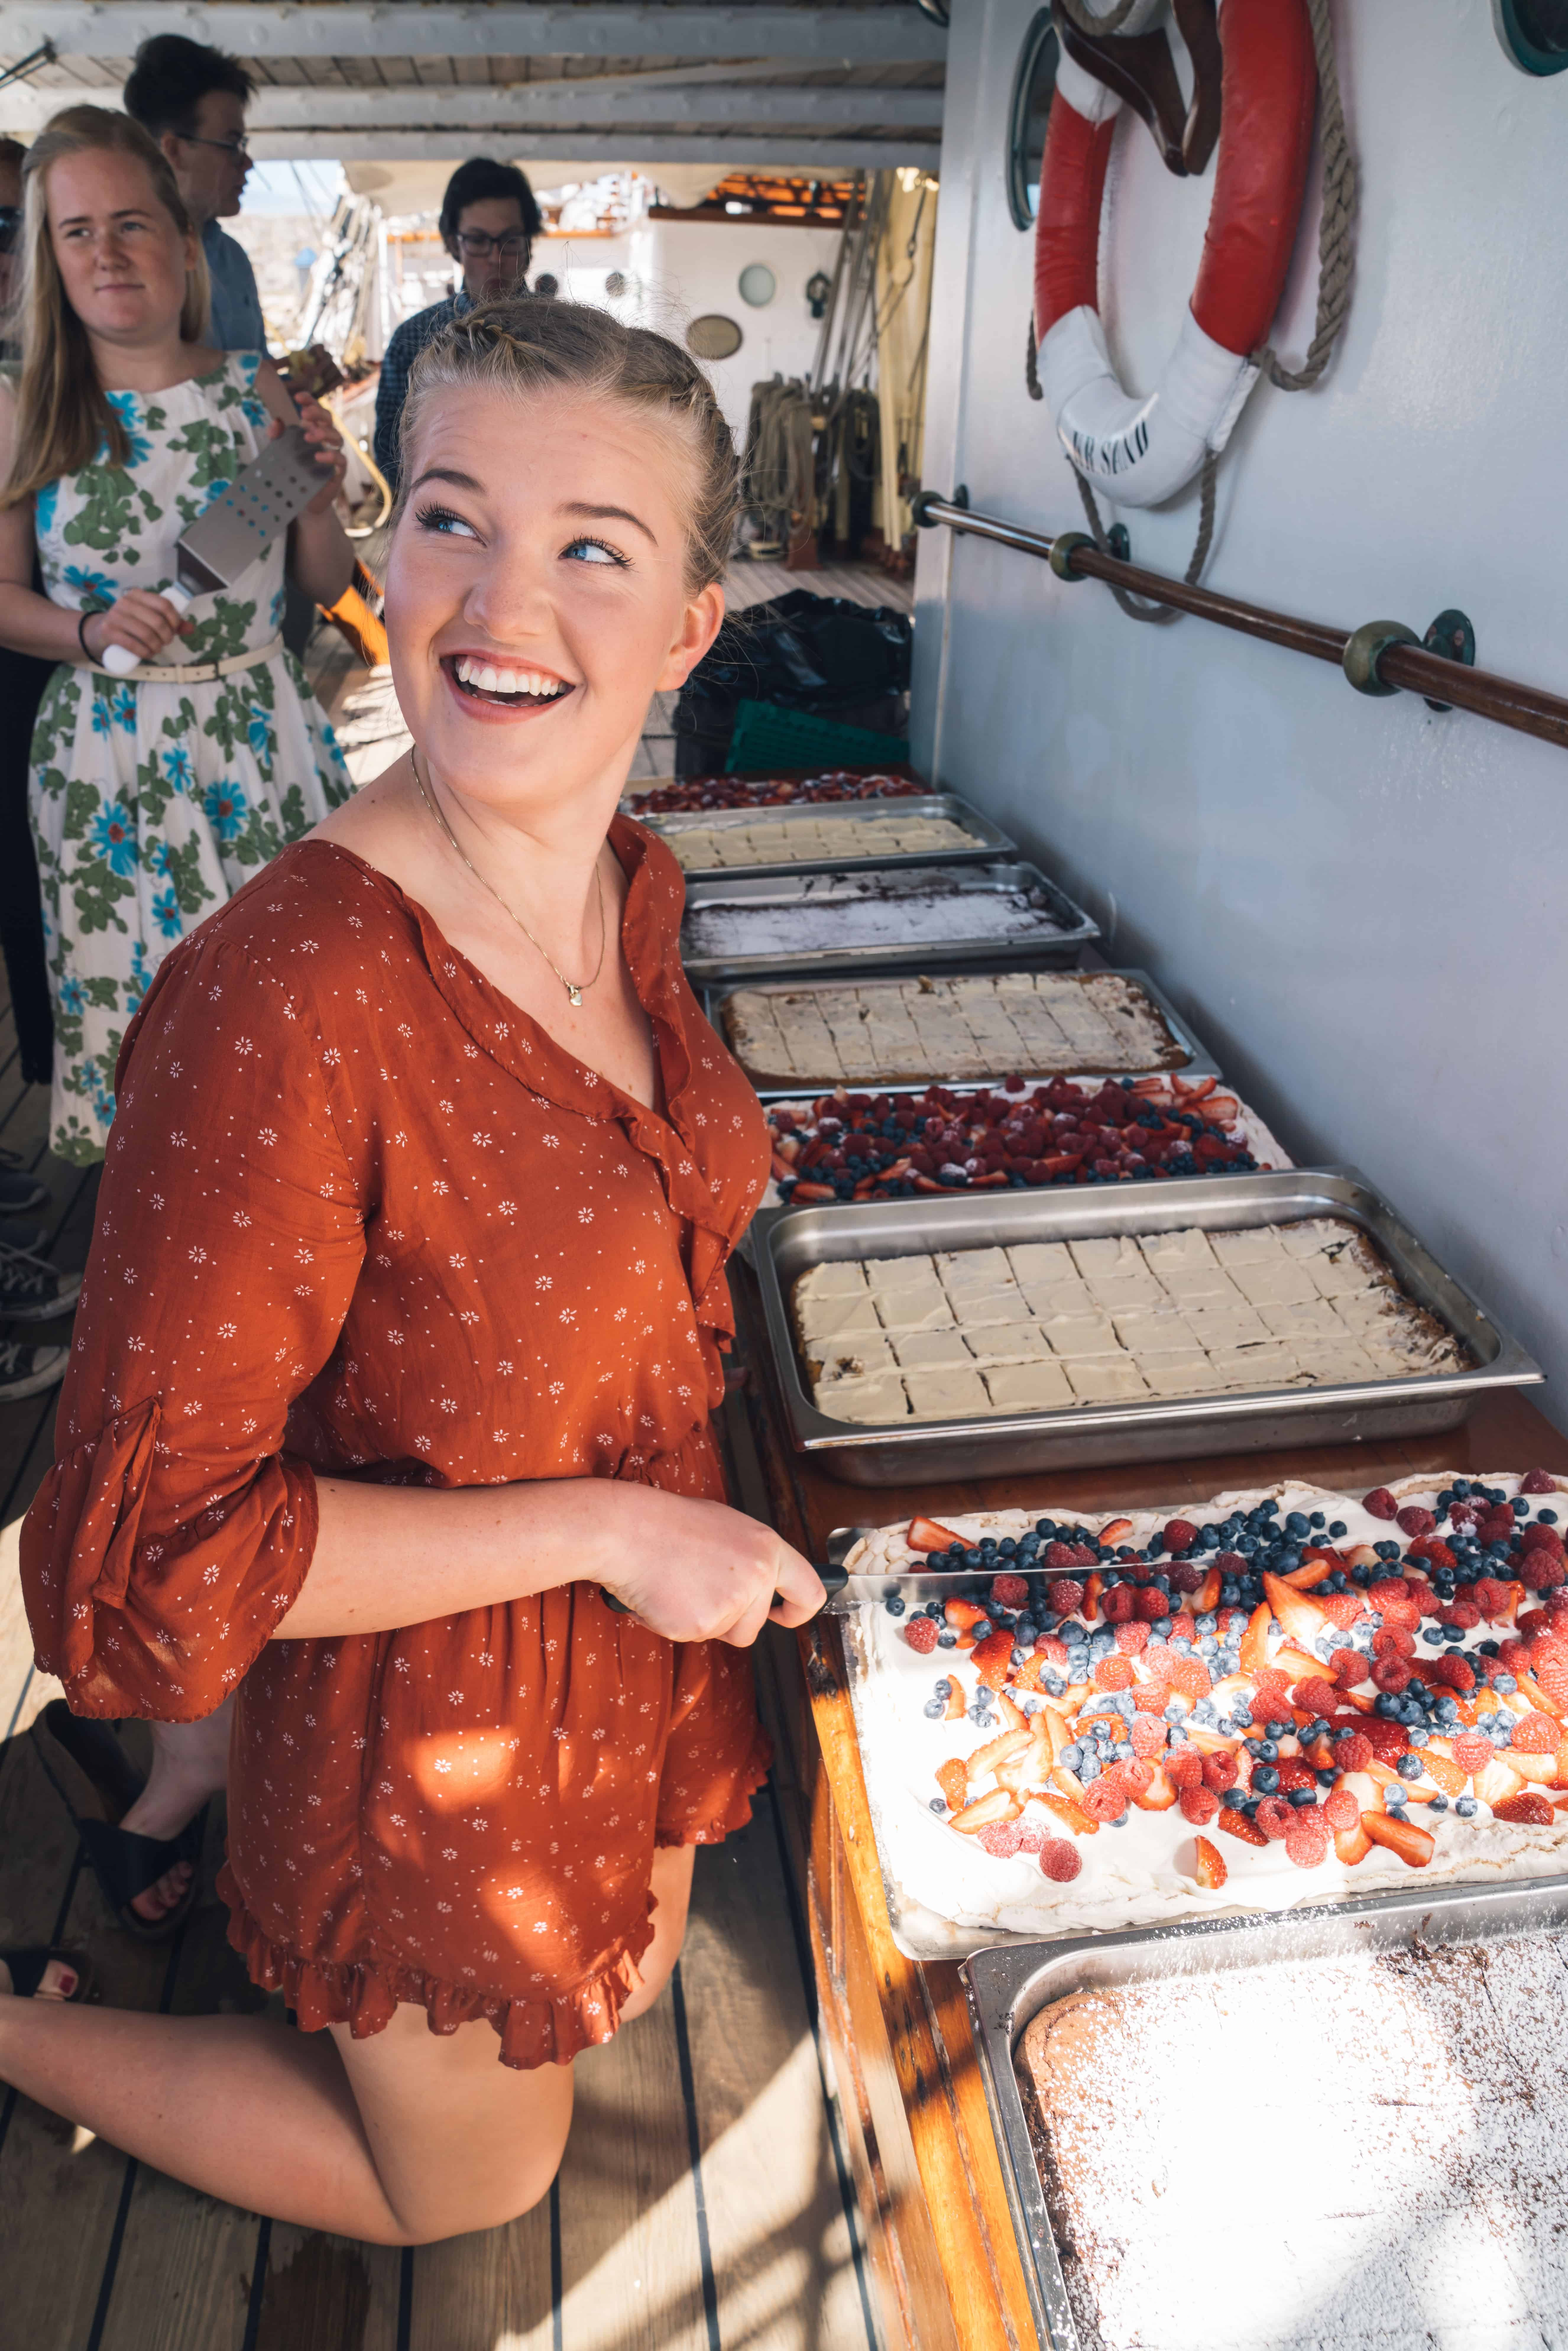 2017 May 17 Spain Norway's National Day Louise with the cakes